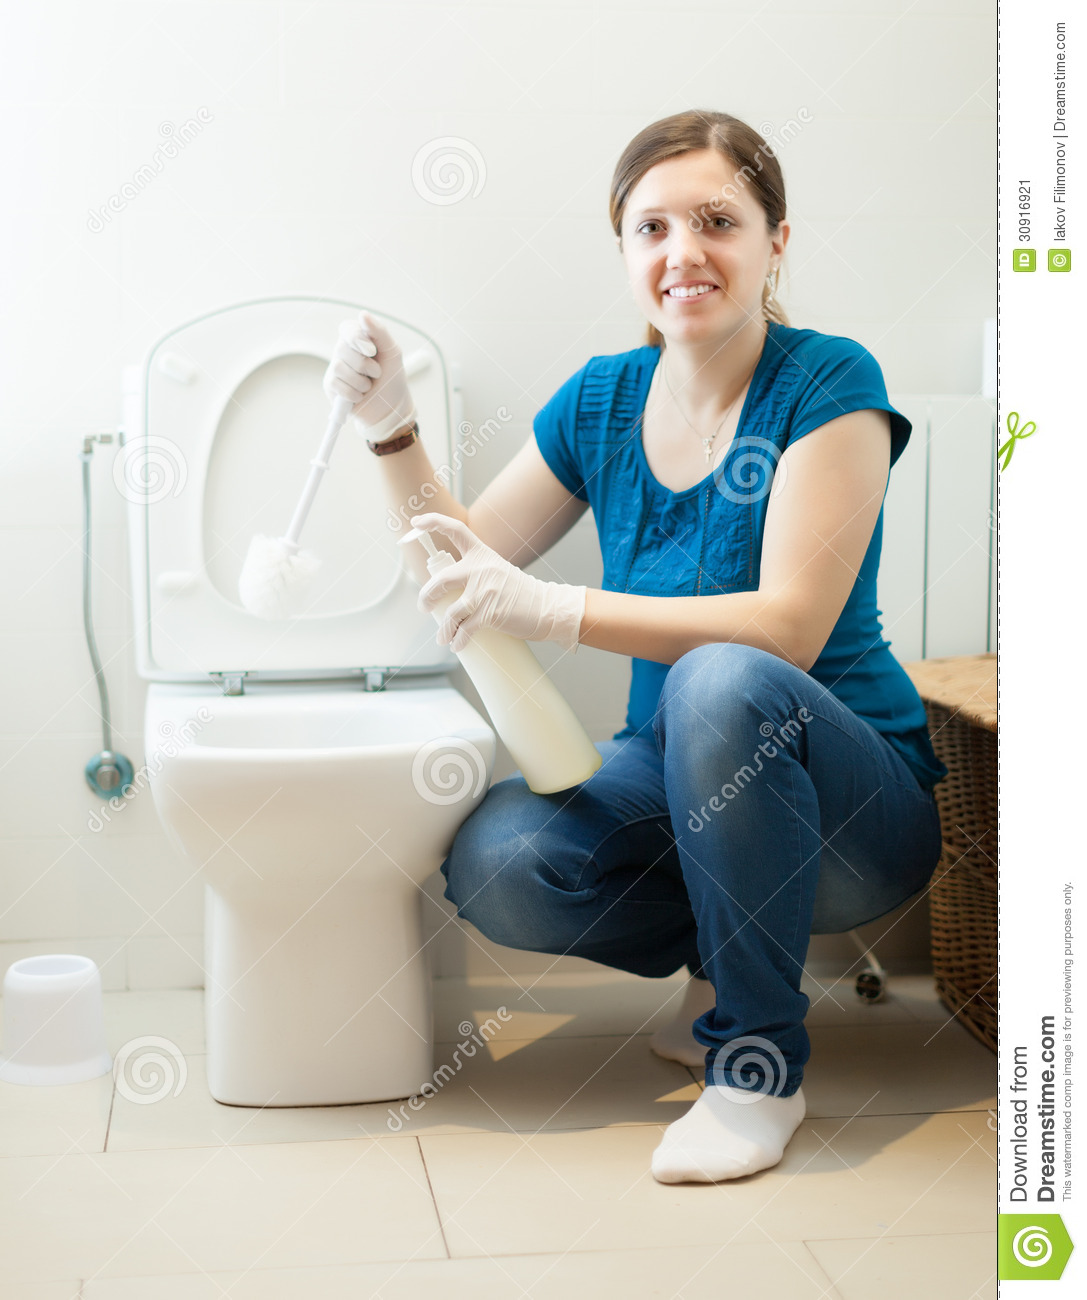 Housewife Cleaning Toilet Bowl With Brush Stock Image Image Of - Bathroom cleaner person